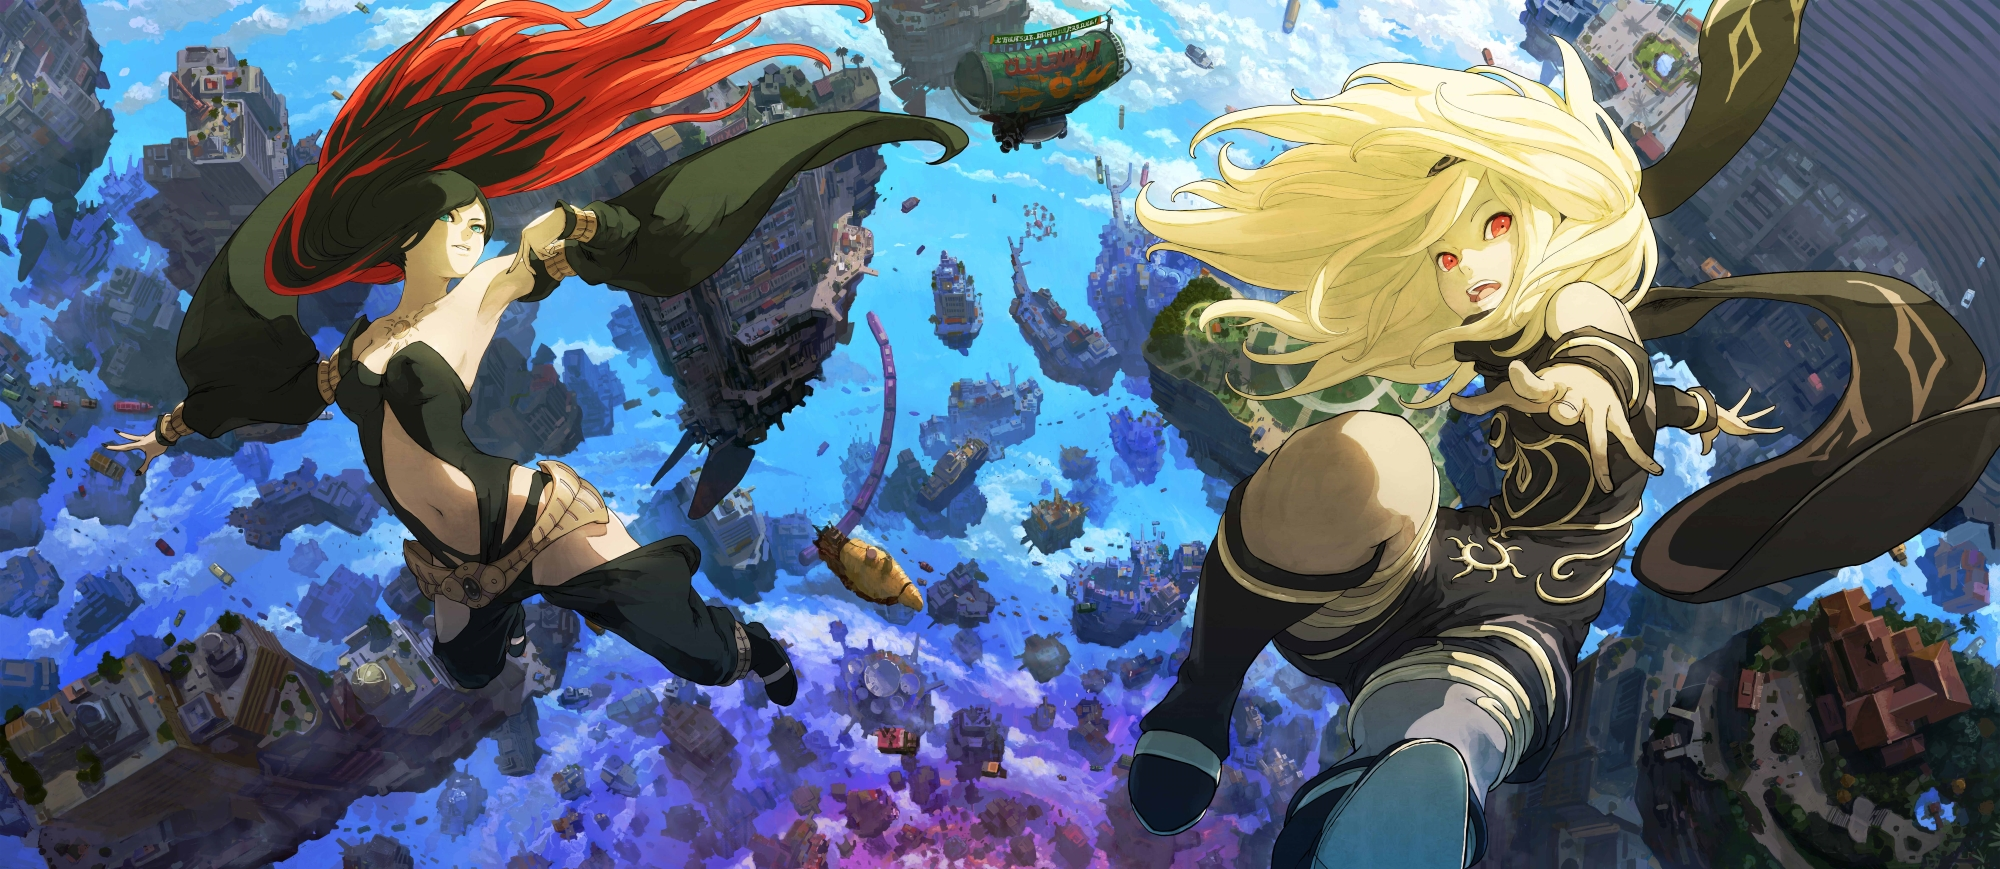 Silent Hill and Gravity Rush creator leaves Sony to form own studio